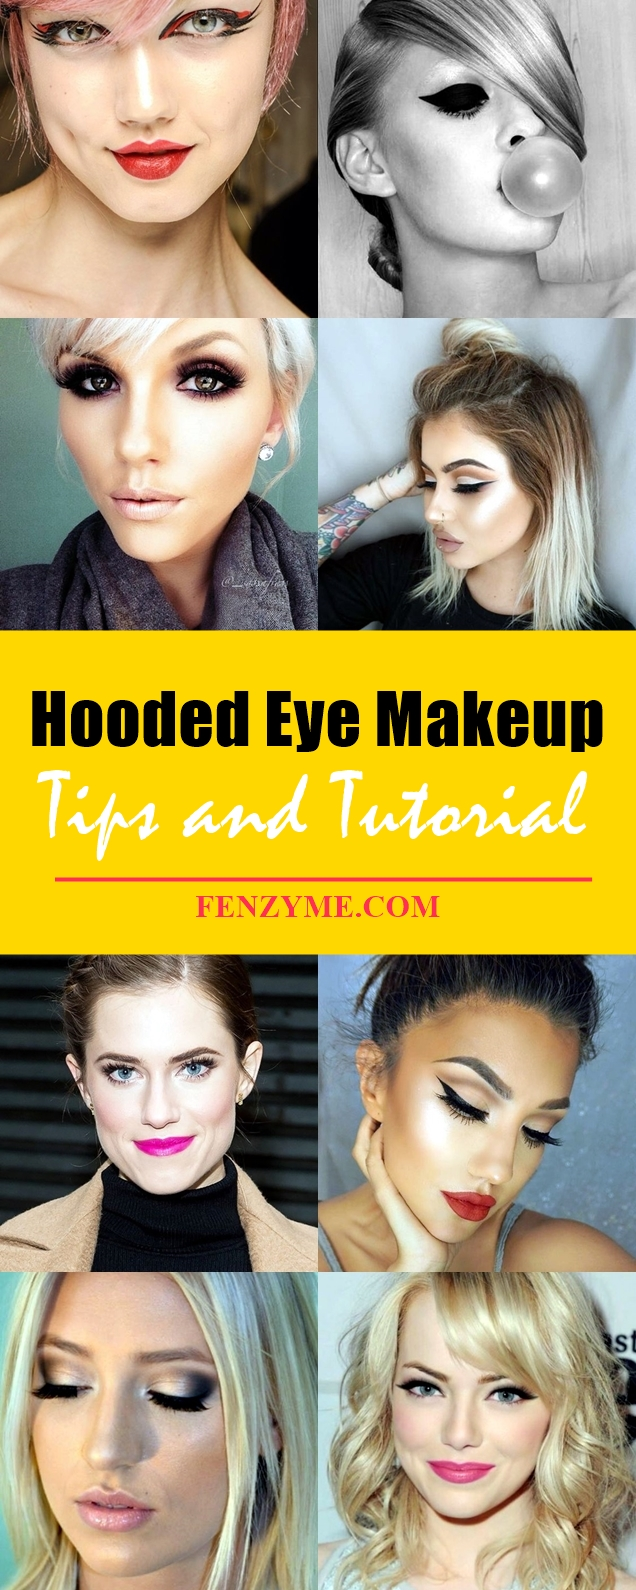 hooded-eye-makeup-tips-and-tutorial